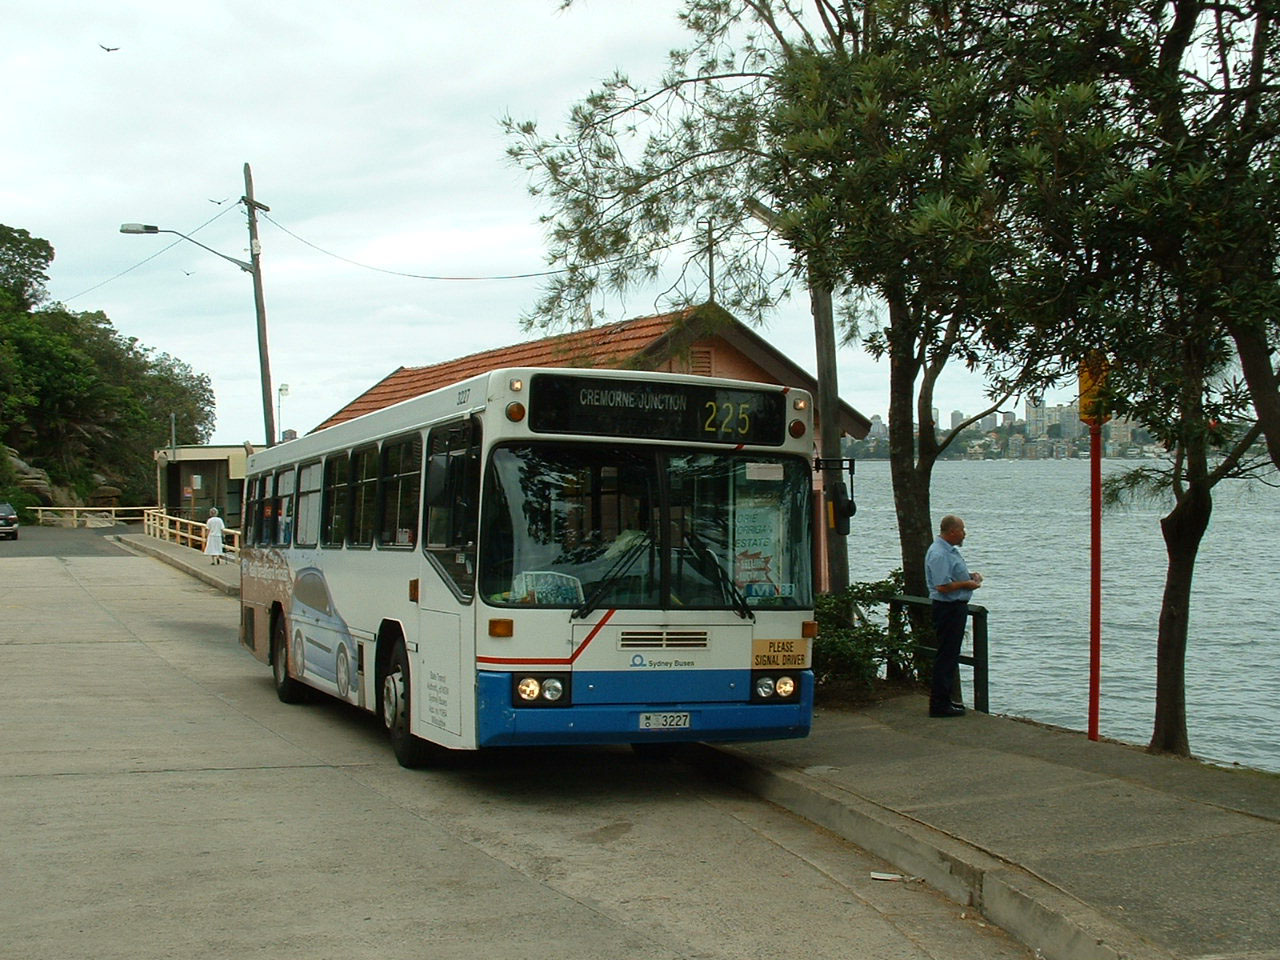 Sydney Buses Mercedes O405 PMC 3227